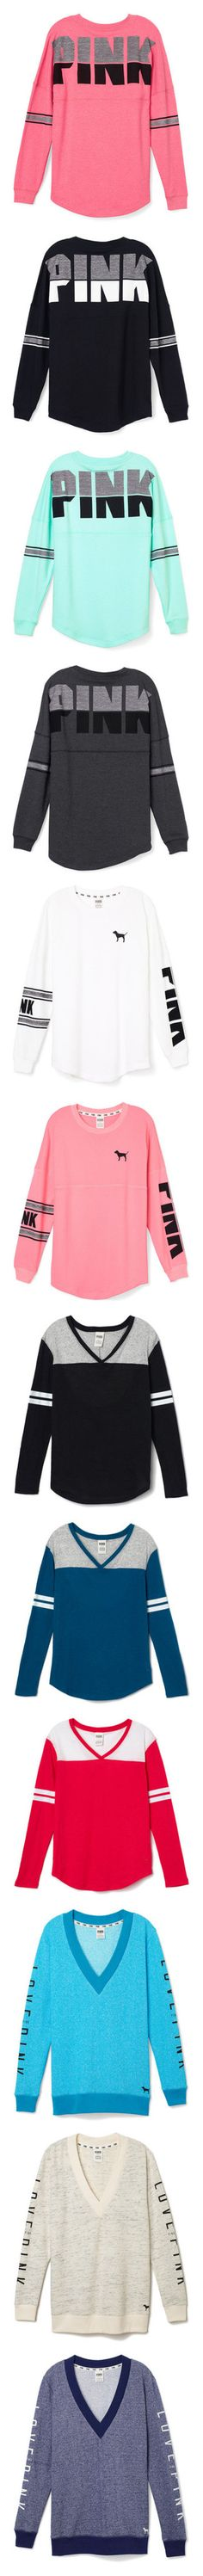 """Victoria's Secret PINK Long Sleeve Shirts"" by oxean-vibes ❤ liked on Polyvore featuring tops, hoodies, sweatshirts, shirts, pink, sweaters, victoria's secret, crew shirt, red crewneck sweatshirt and crewneck sweatshirt"